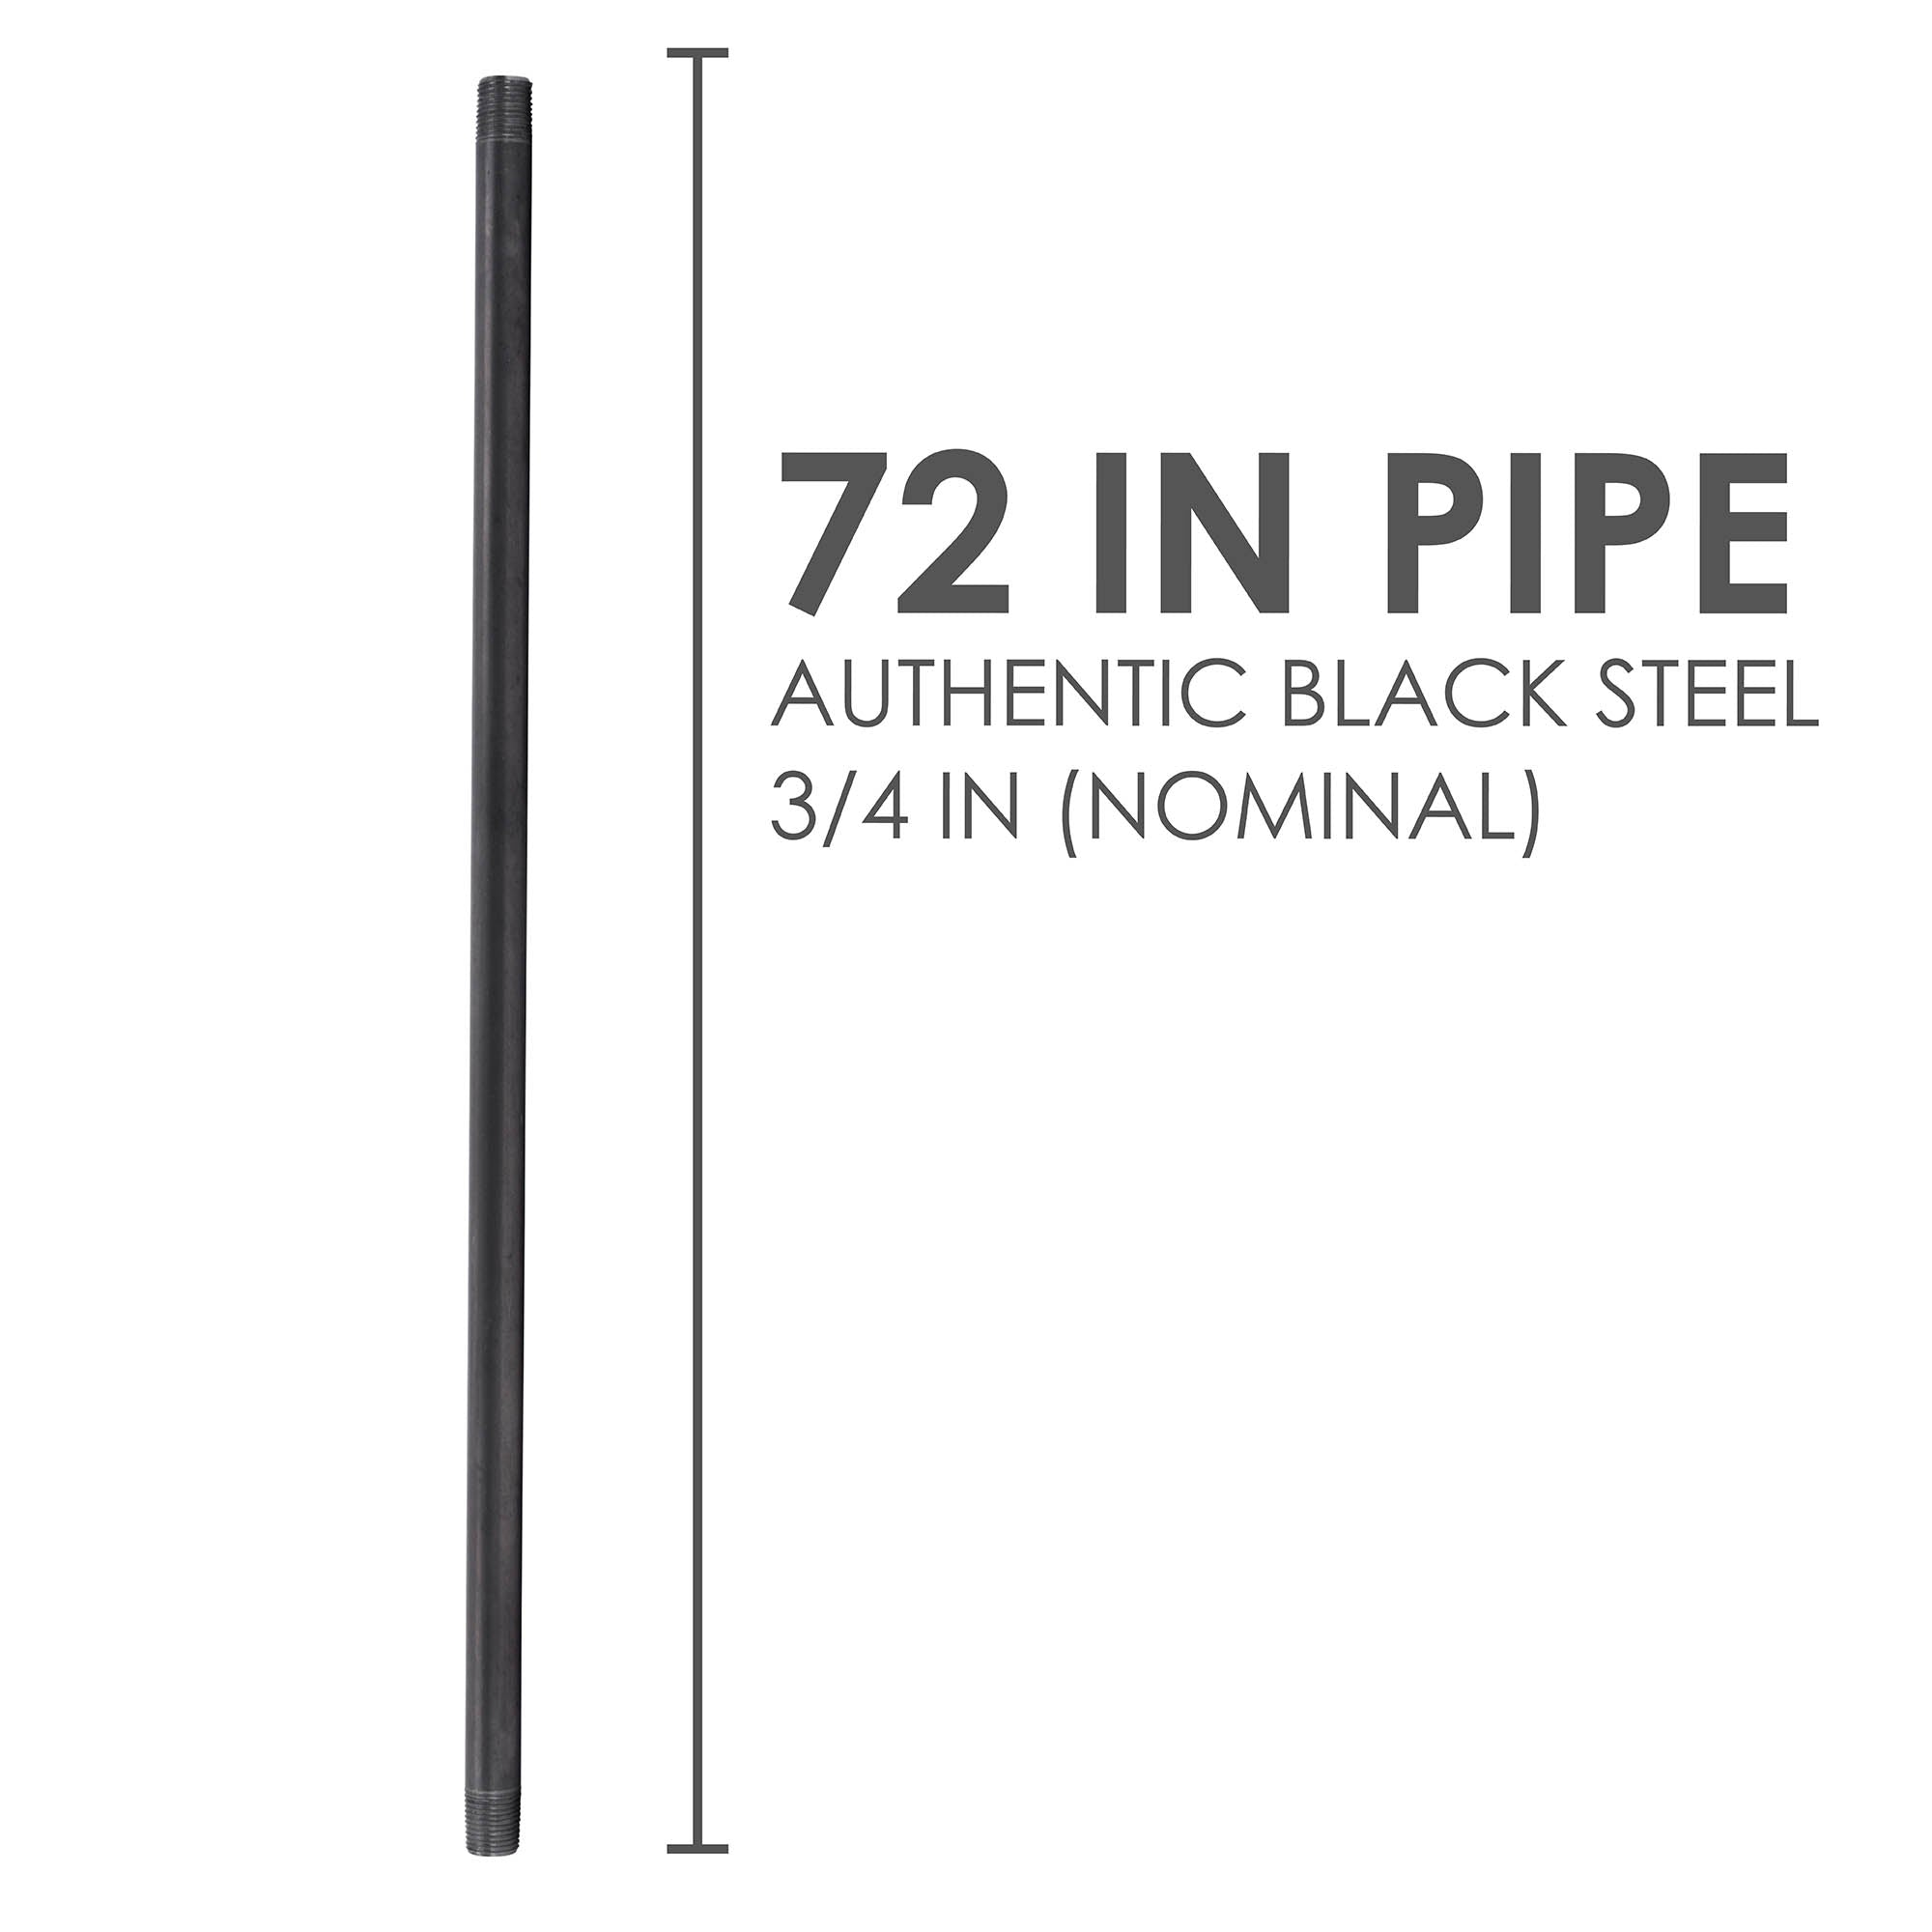 3/4 In X 72 In Black Pipe - Pipe Decor